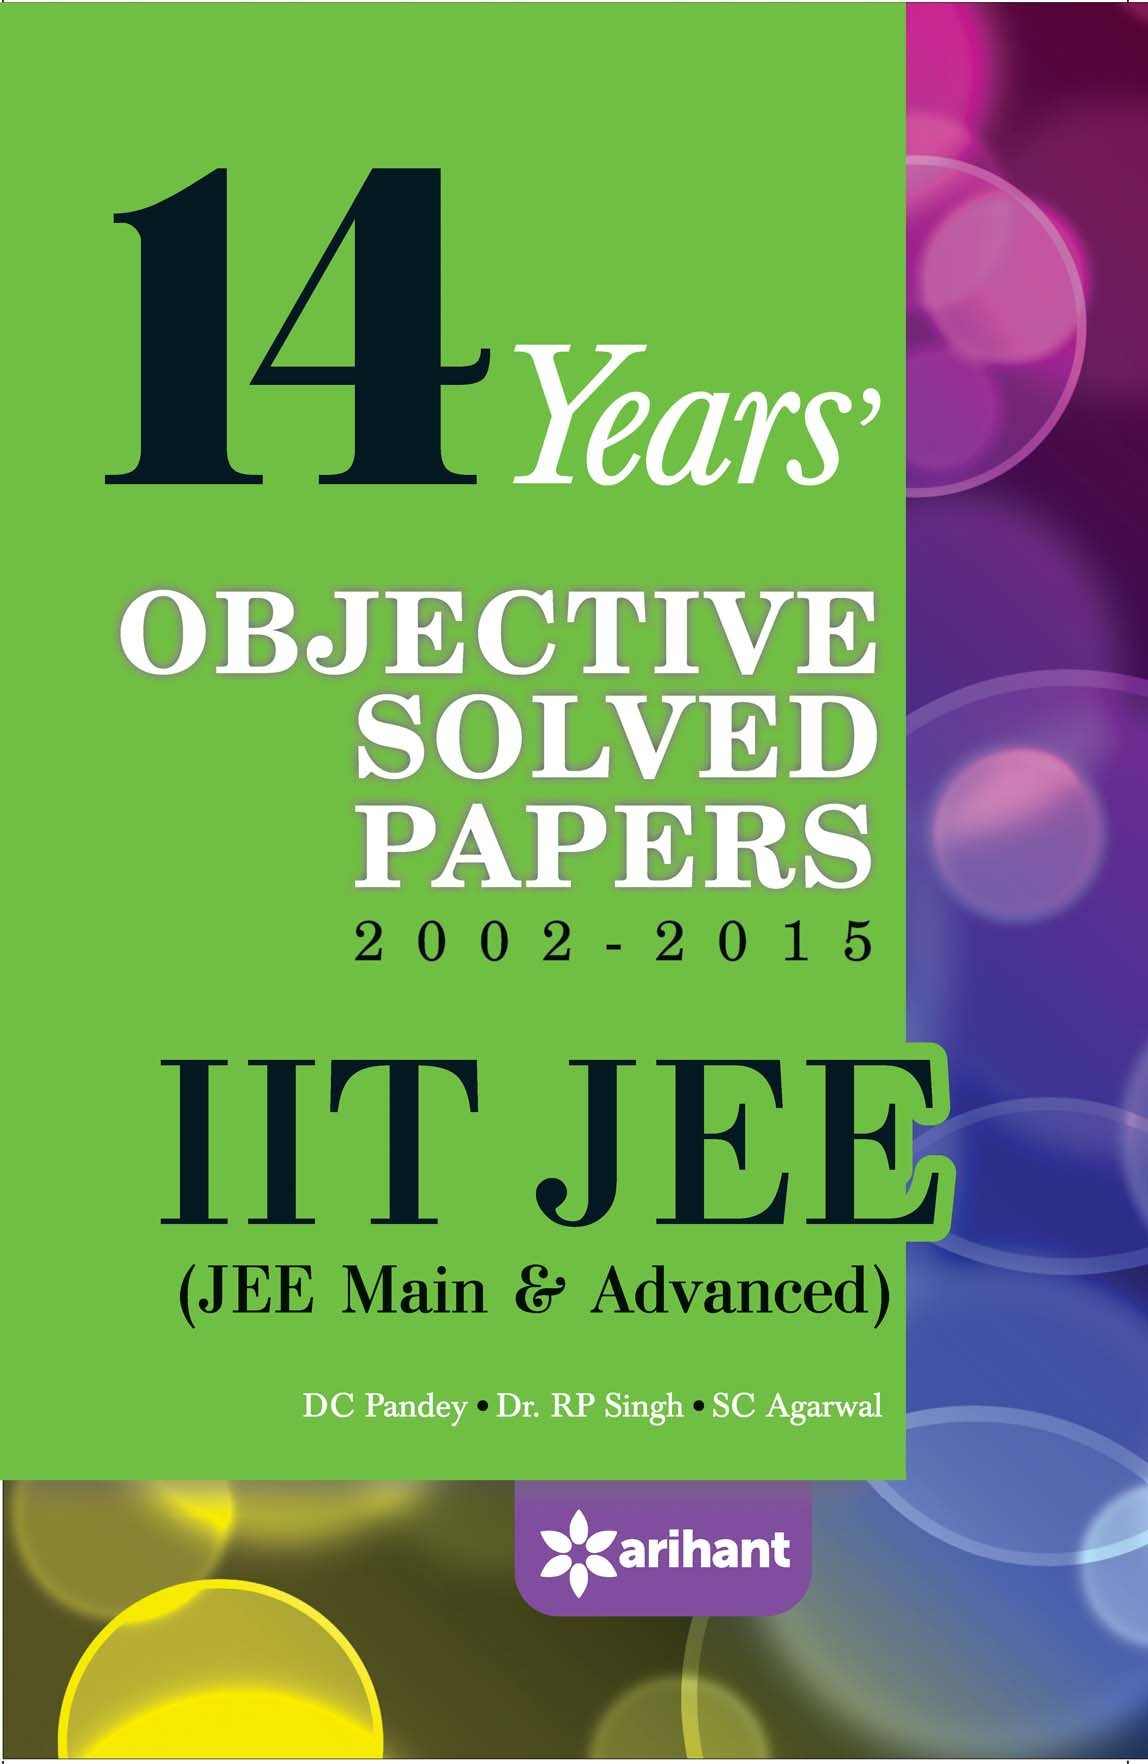 14 Years' Objective Solved Papers 2002-2015: IIT JEE (JEE Main & Advancd):  SC Agarwal R P Singh (Author) D C Pandey (Author): 9789352037261:  Amazon.com: ...